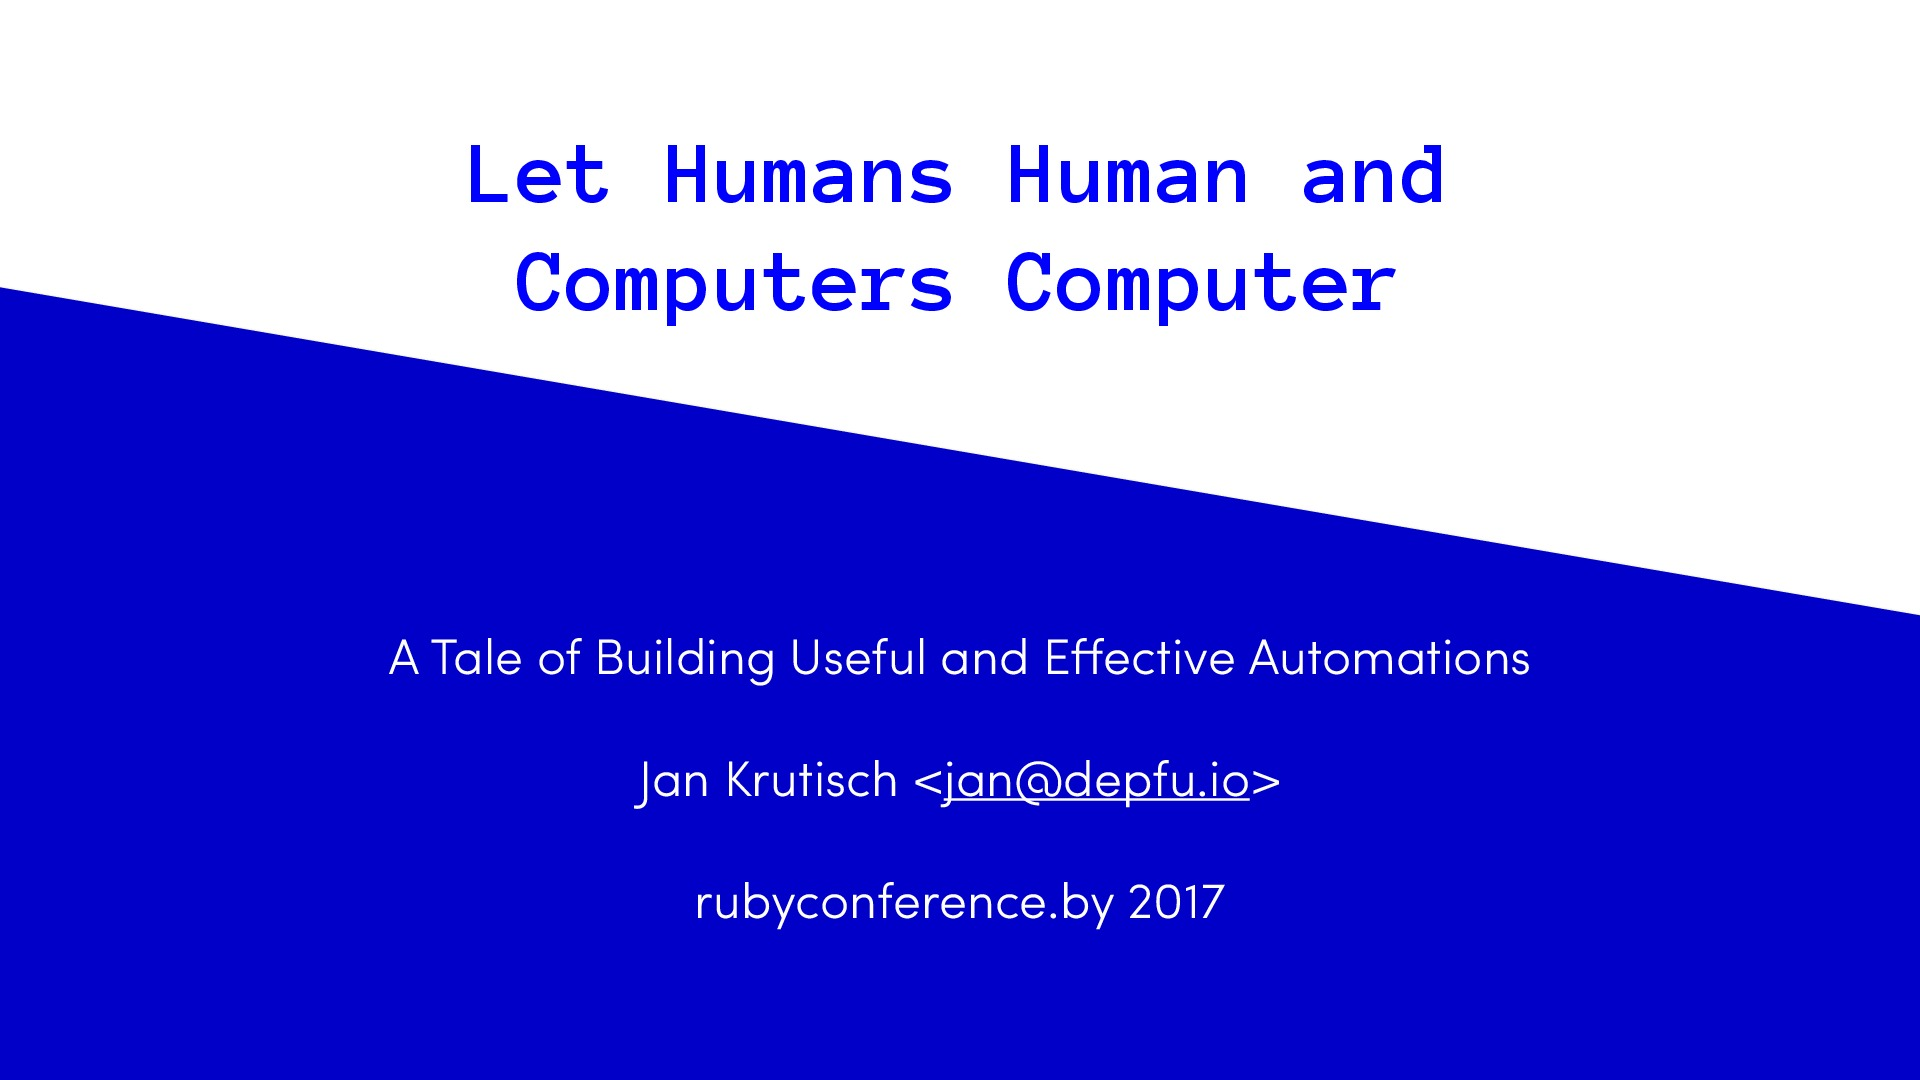 Let Humans human and Computers computer